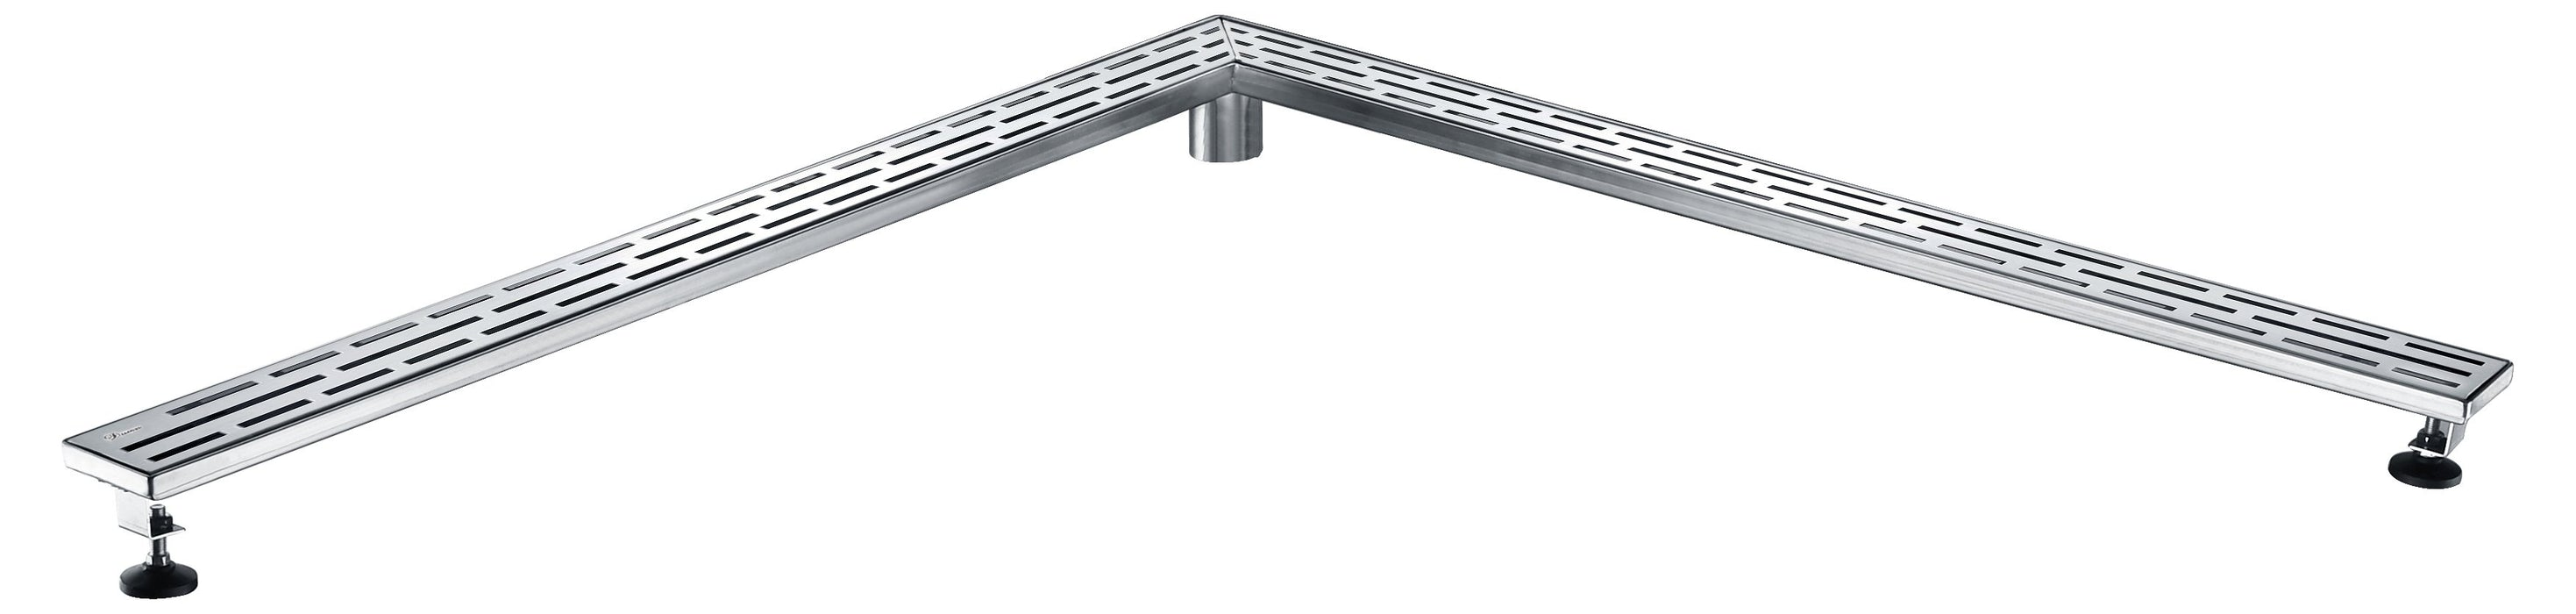 "Dawn Amazon River Series Corner Shower Drain 36"" x 36""-Bathroom Accessories Fast Shipping at DirectSinks."